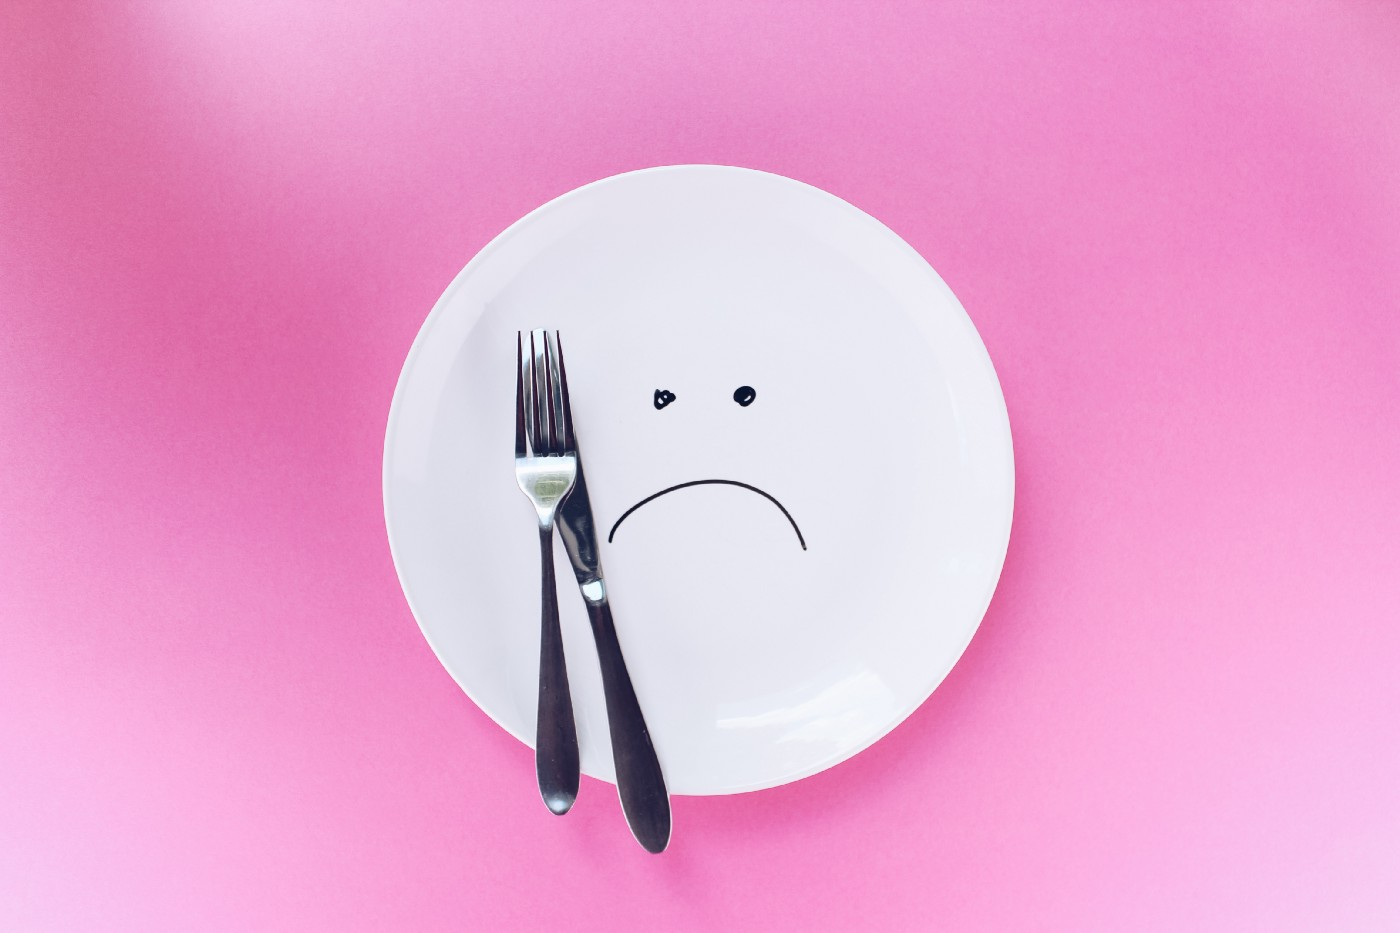 A white plate, with a frown drawn on it, with a fork and knife placed upon it.